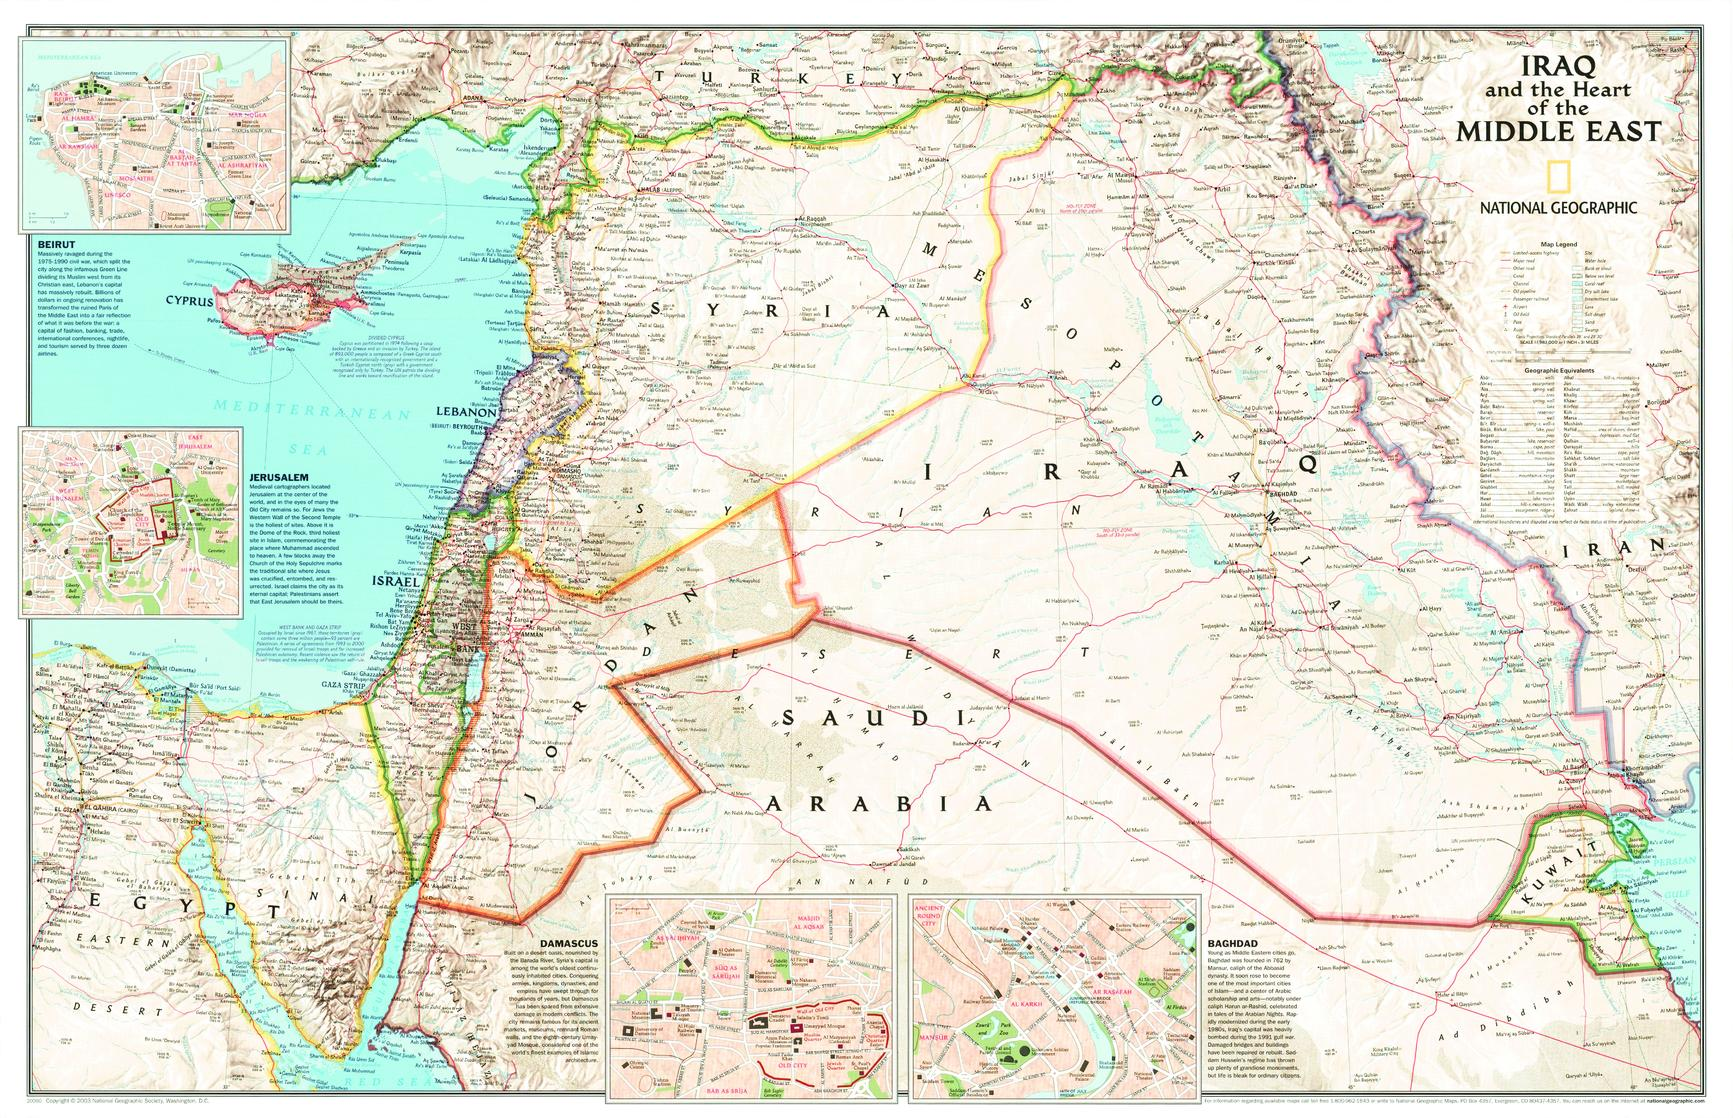 Picture of: Iraq And The Heart Of The Middle East By Nat Geo Shop Mapworld